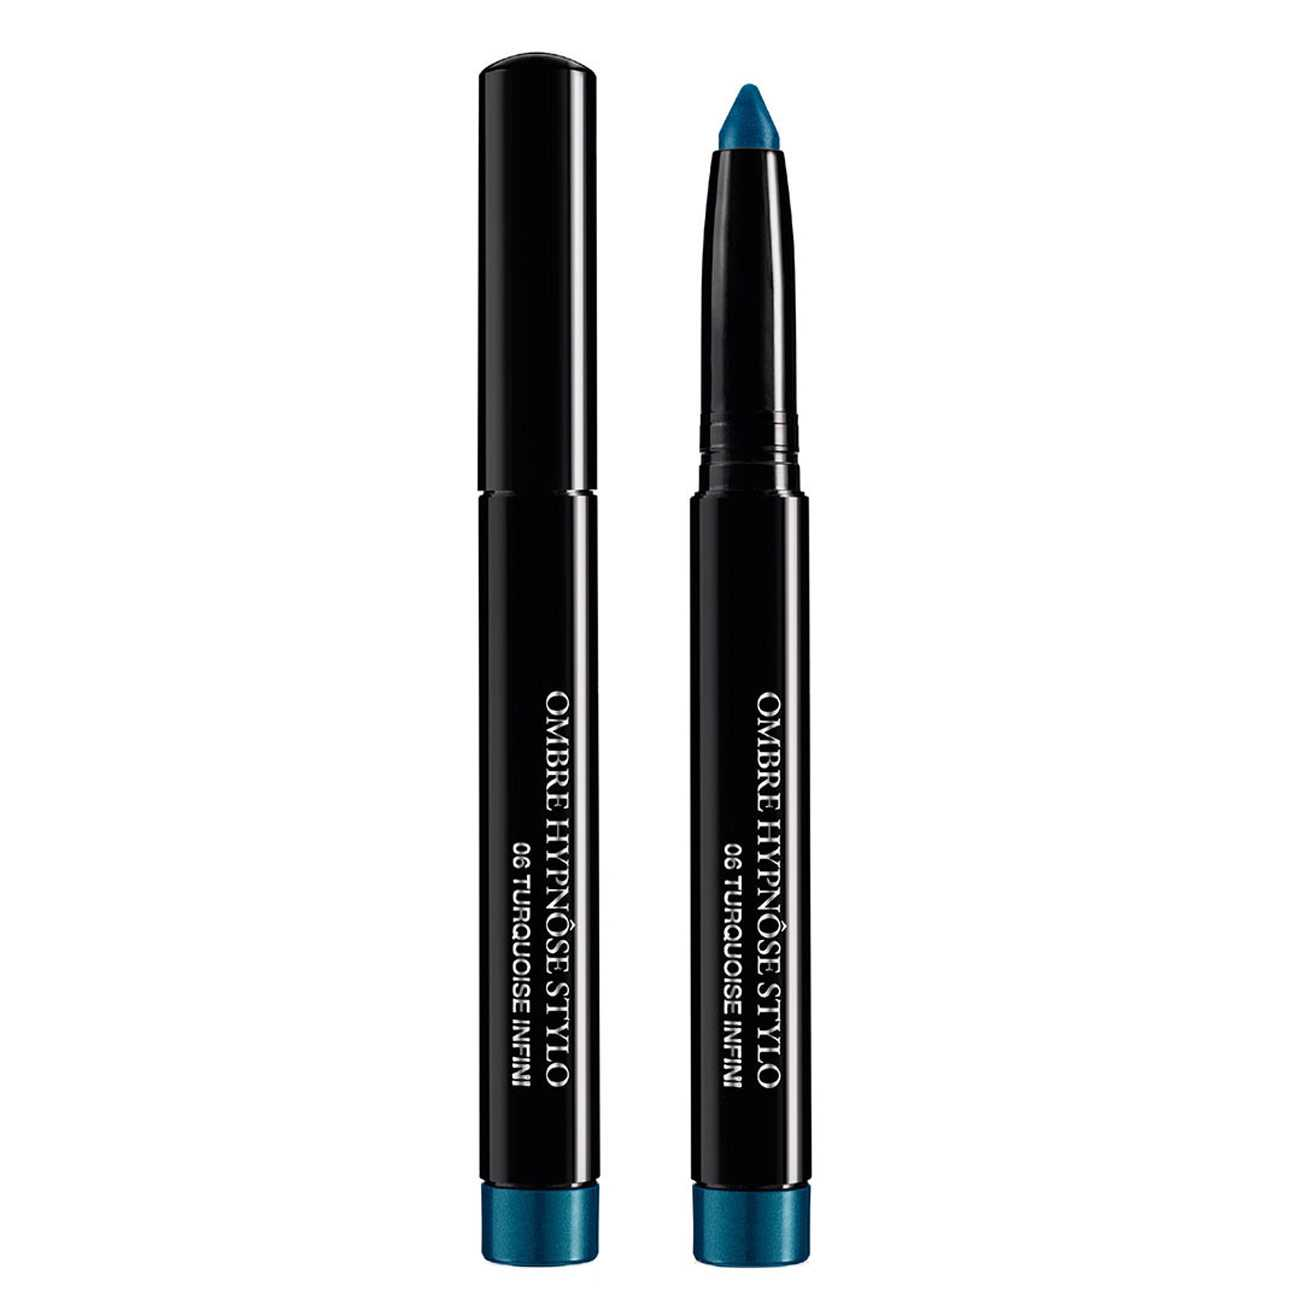 OMBRE HYPNOSE STYLO 1.4 G Turquoise Infinity 6